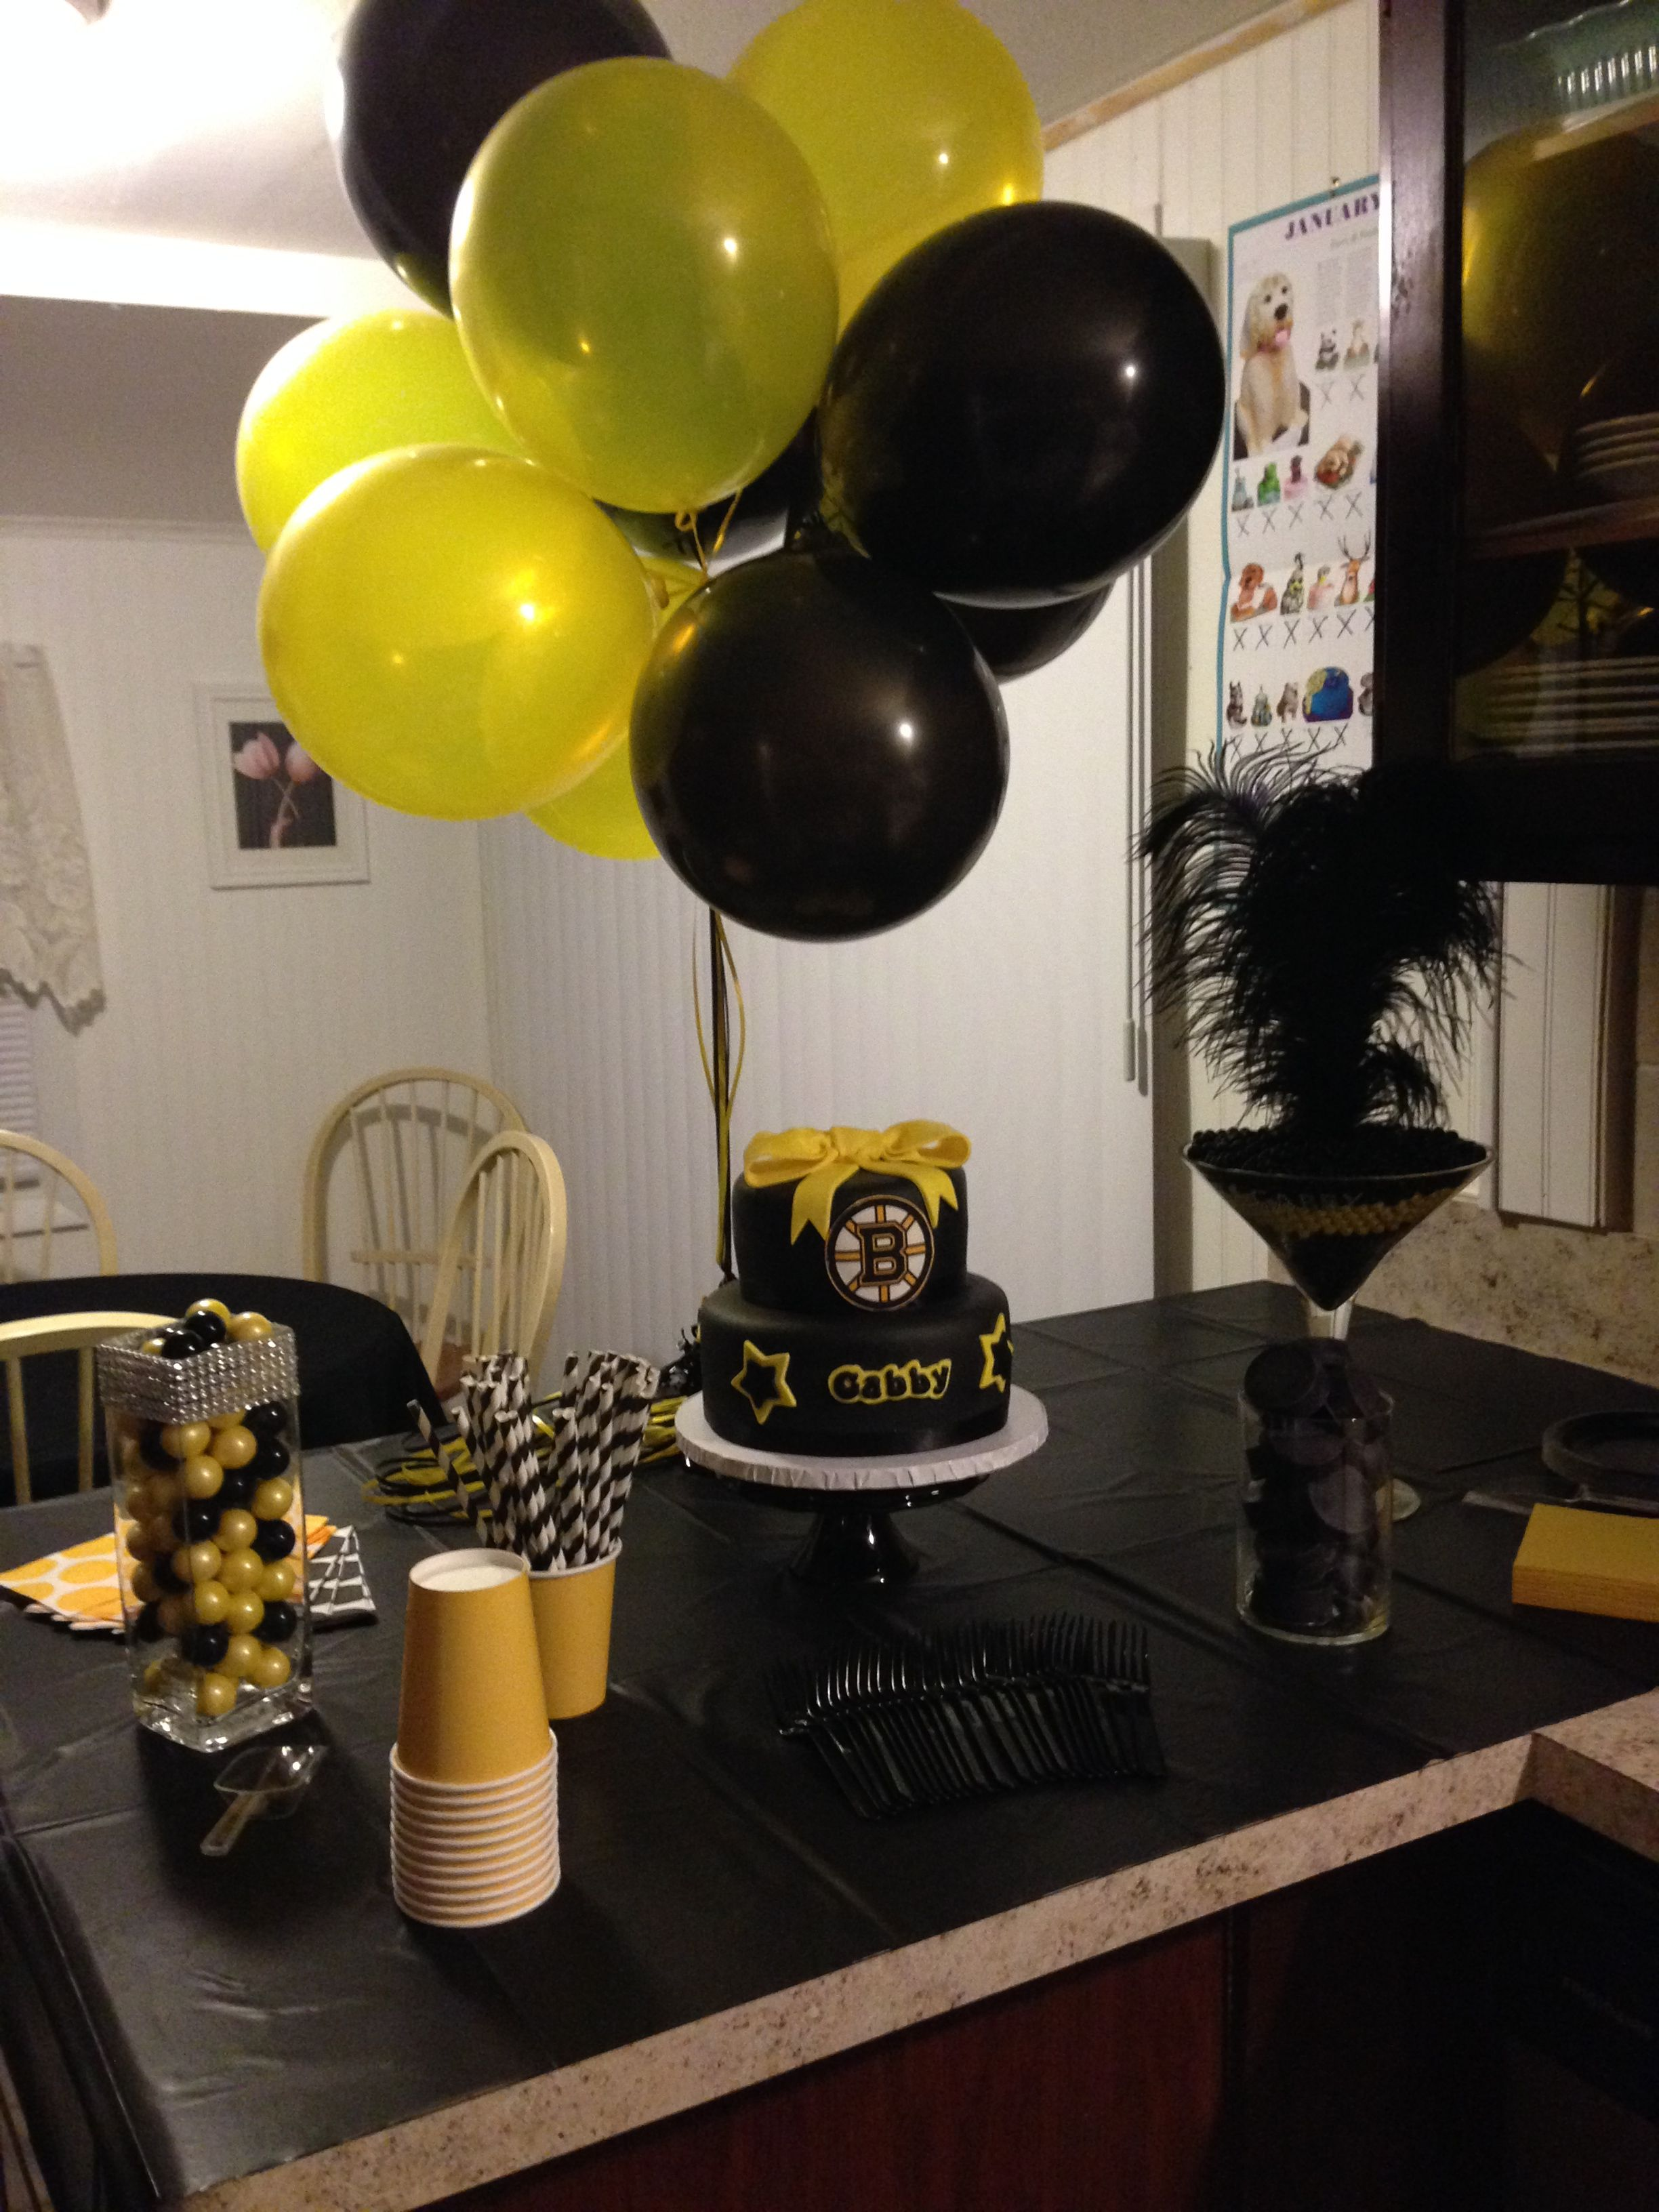 Party Table For A Girls Boston Bruins Party My Party Tables In